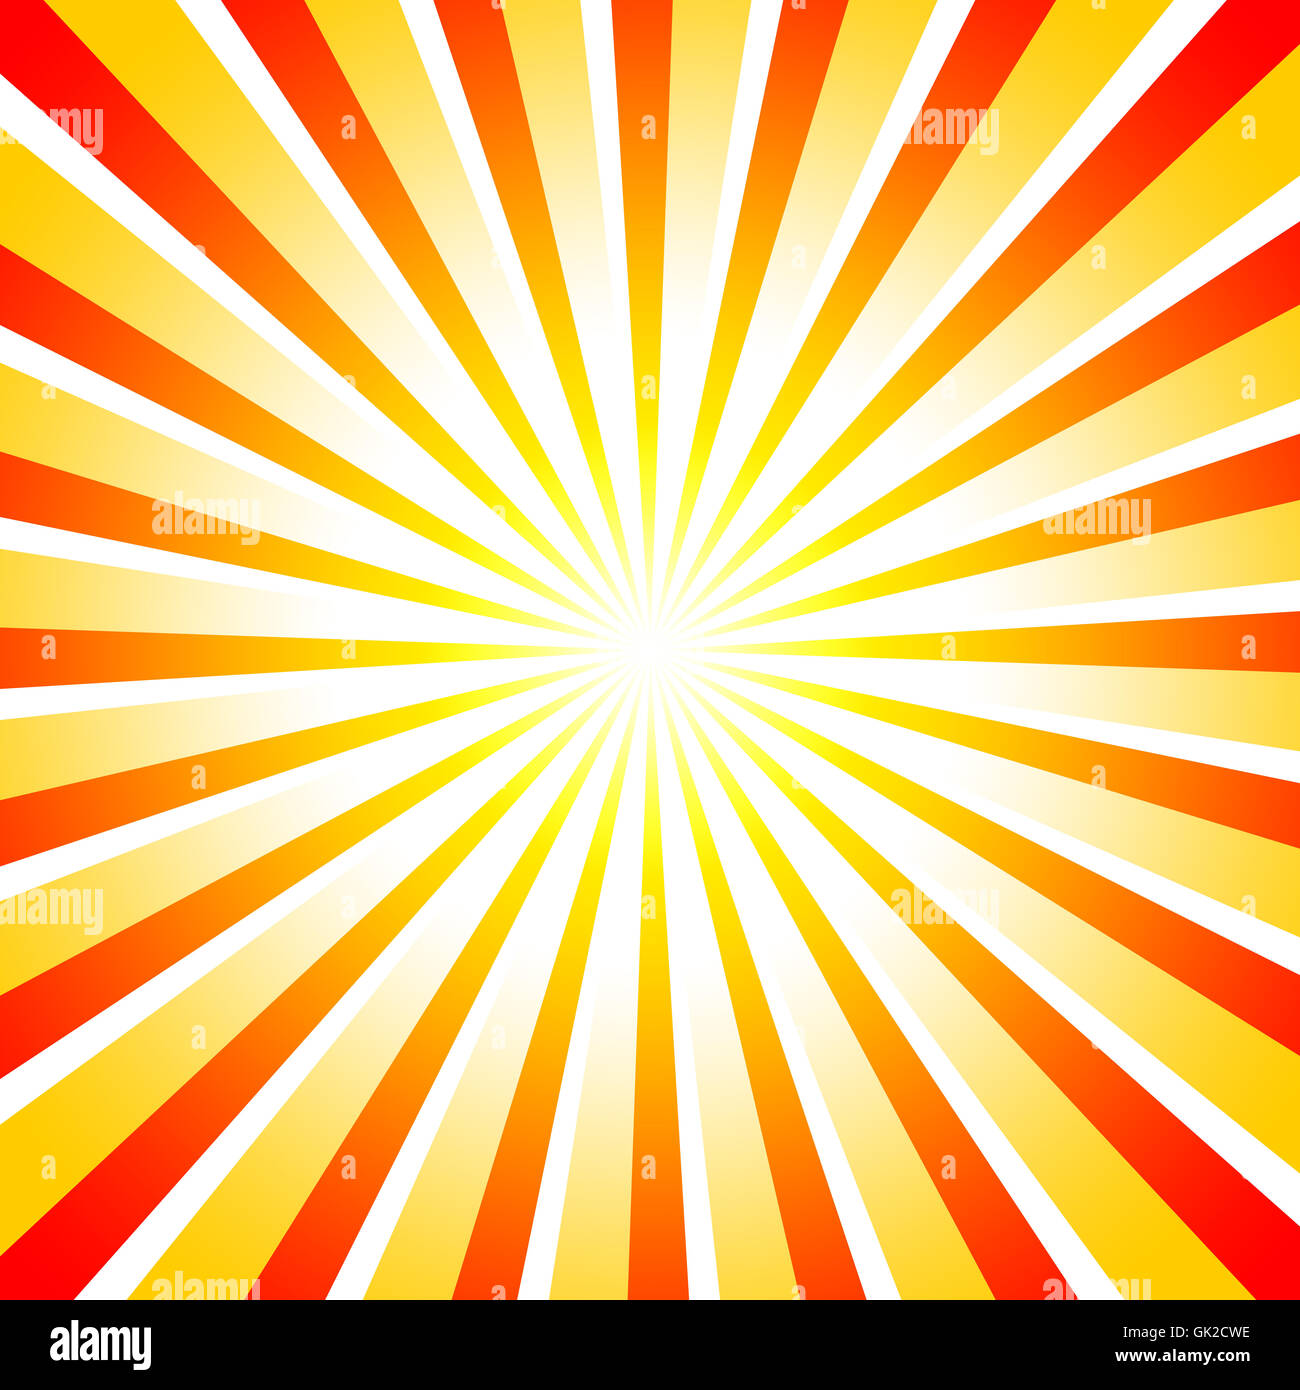 abstract sun rays red orange - Stock Image